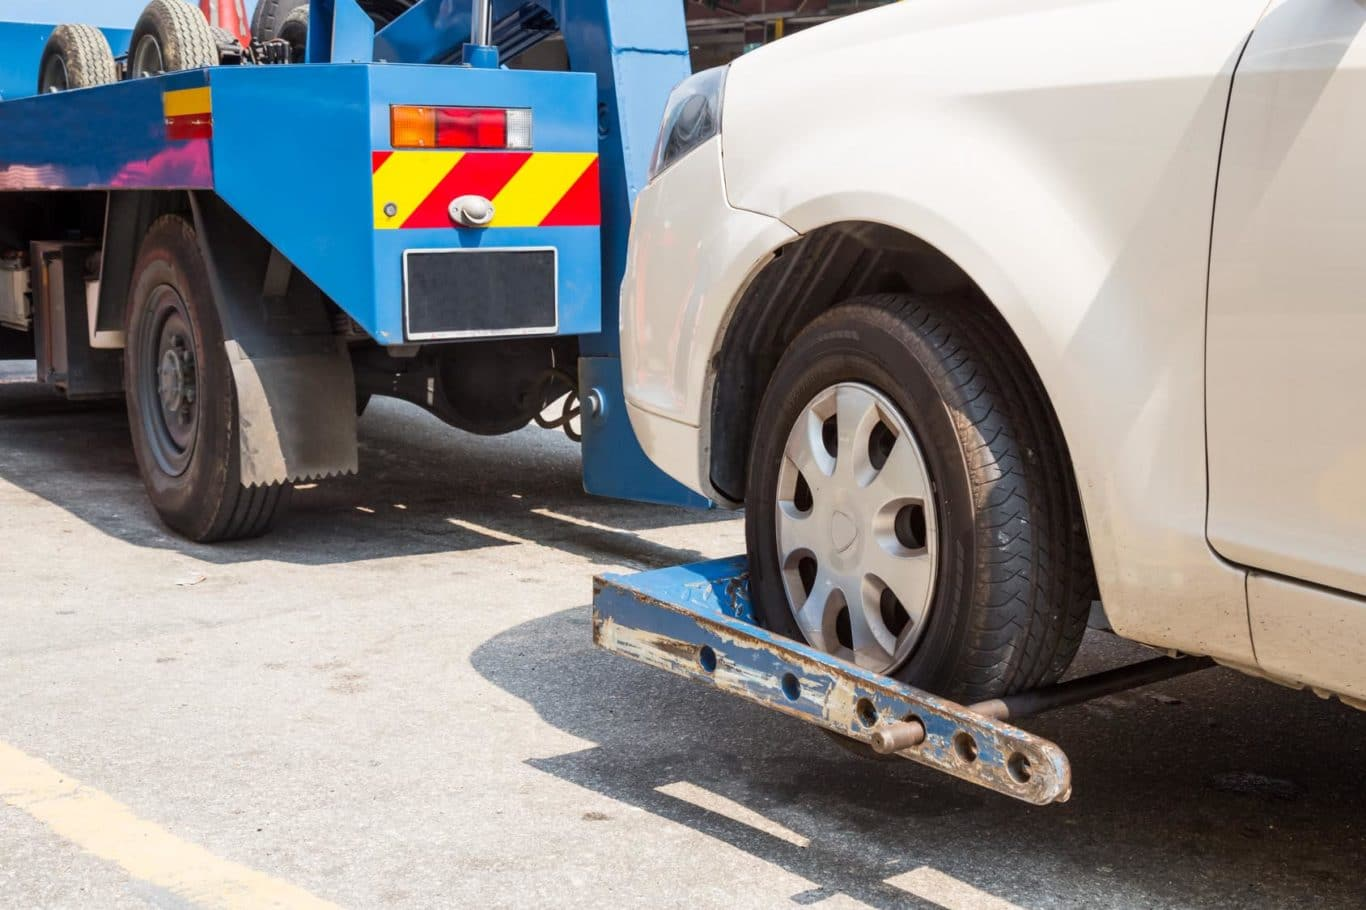 Blackrock, County Louth expert Towing services